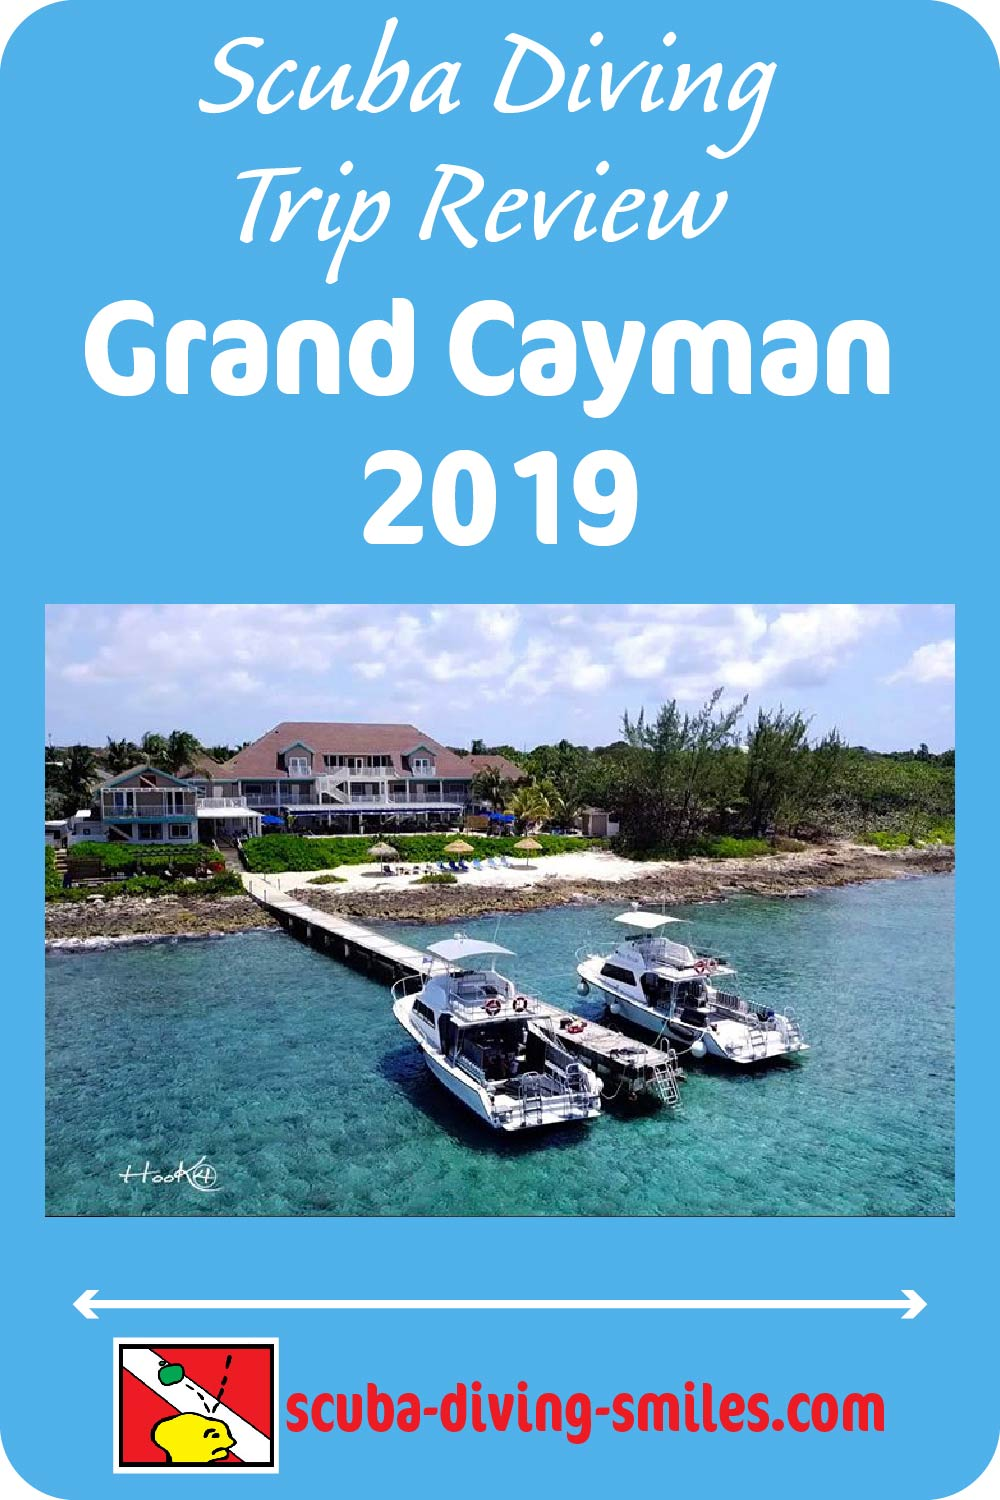 Grand Cayman Scuba Diving Trip Report 2019. Read review of diving and accommodations, including a review diving at the popular Stingray City site.  #scubadiving #grandcayman #scubadivingsmiles